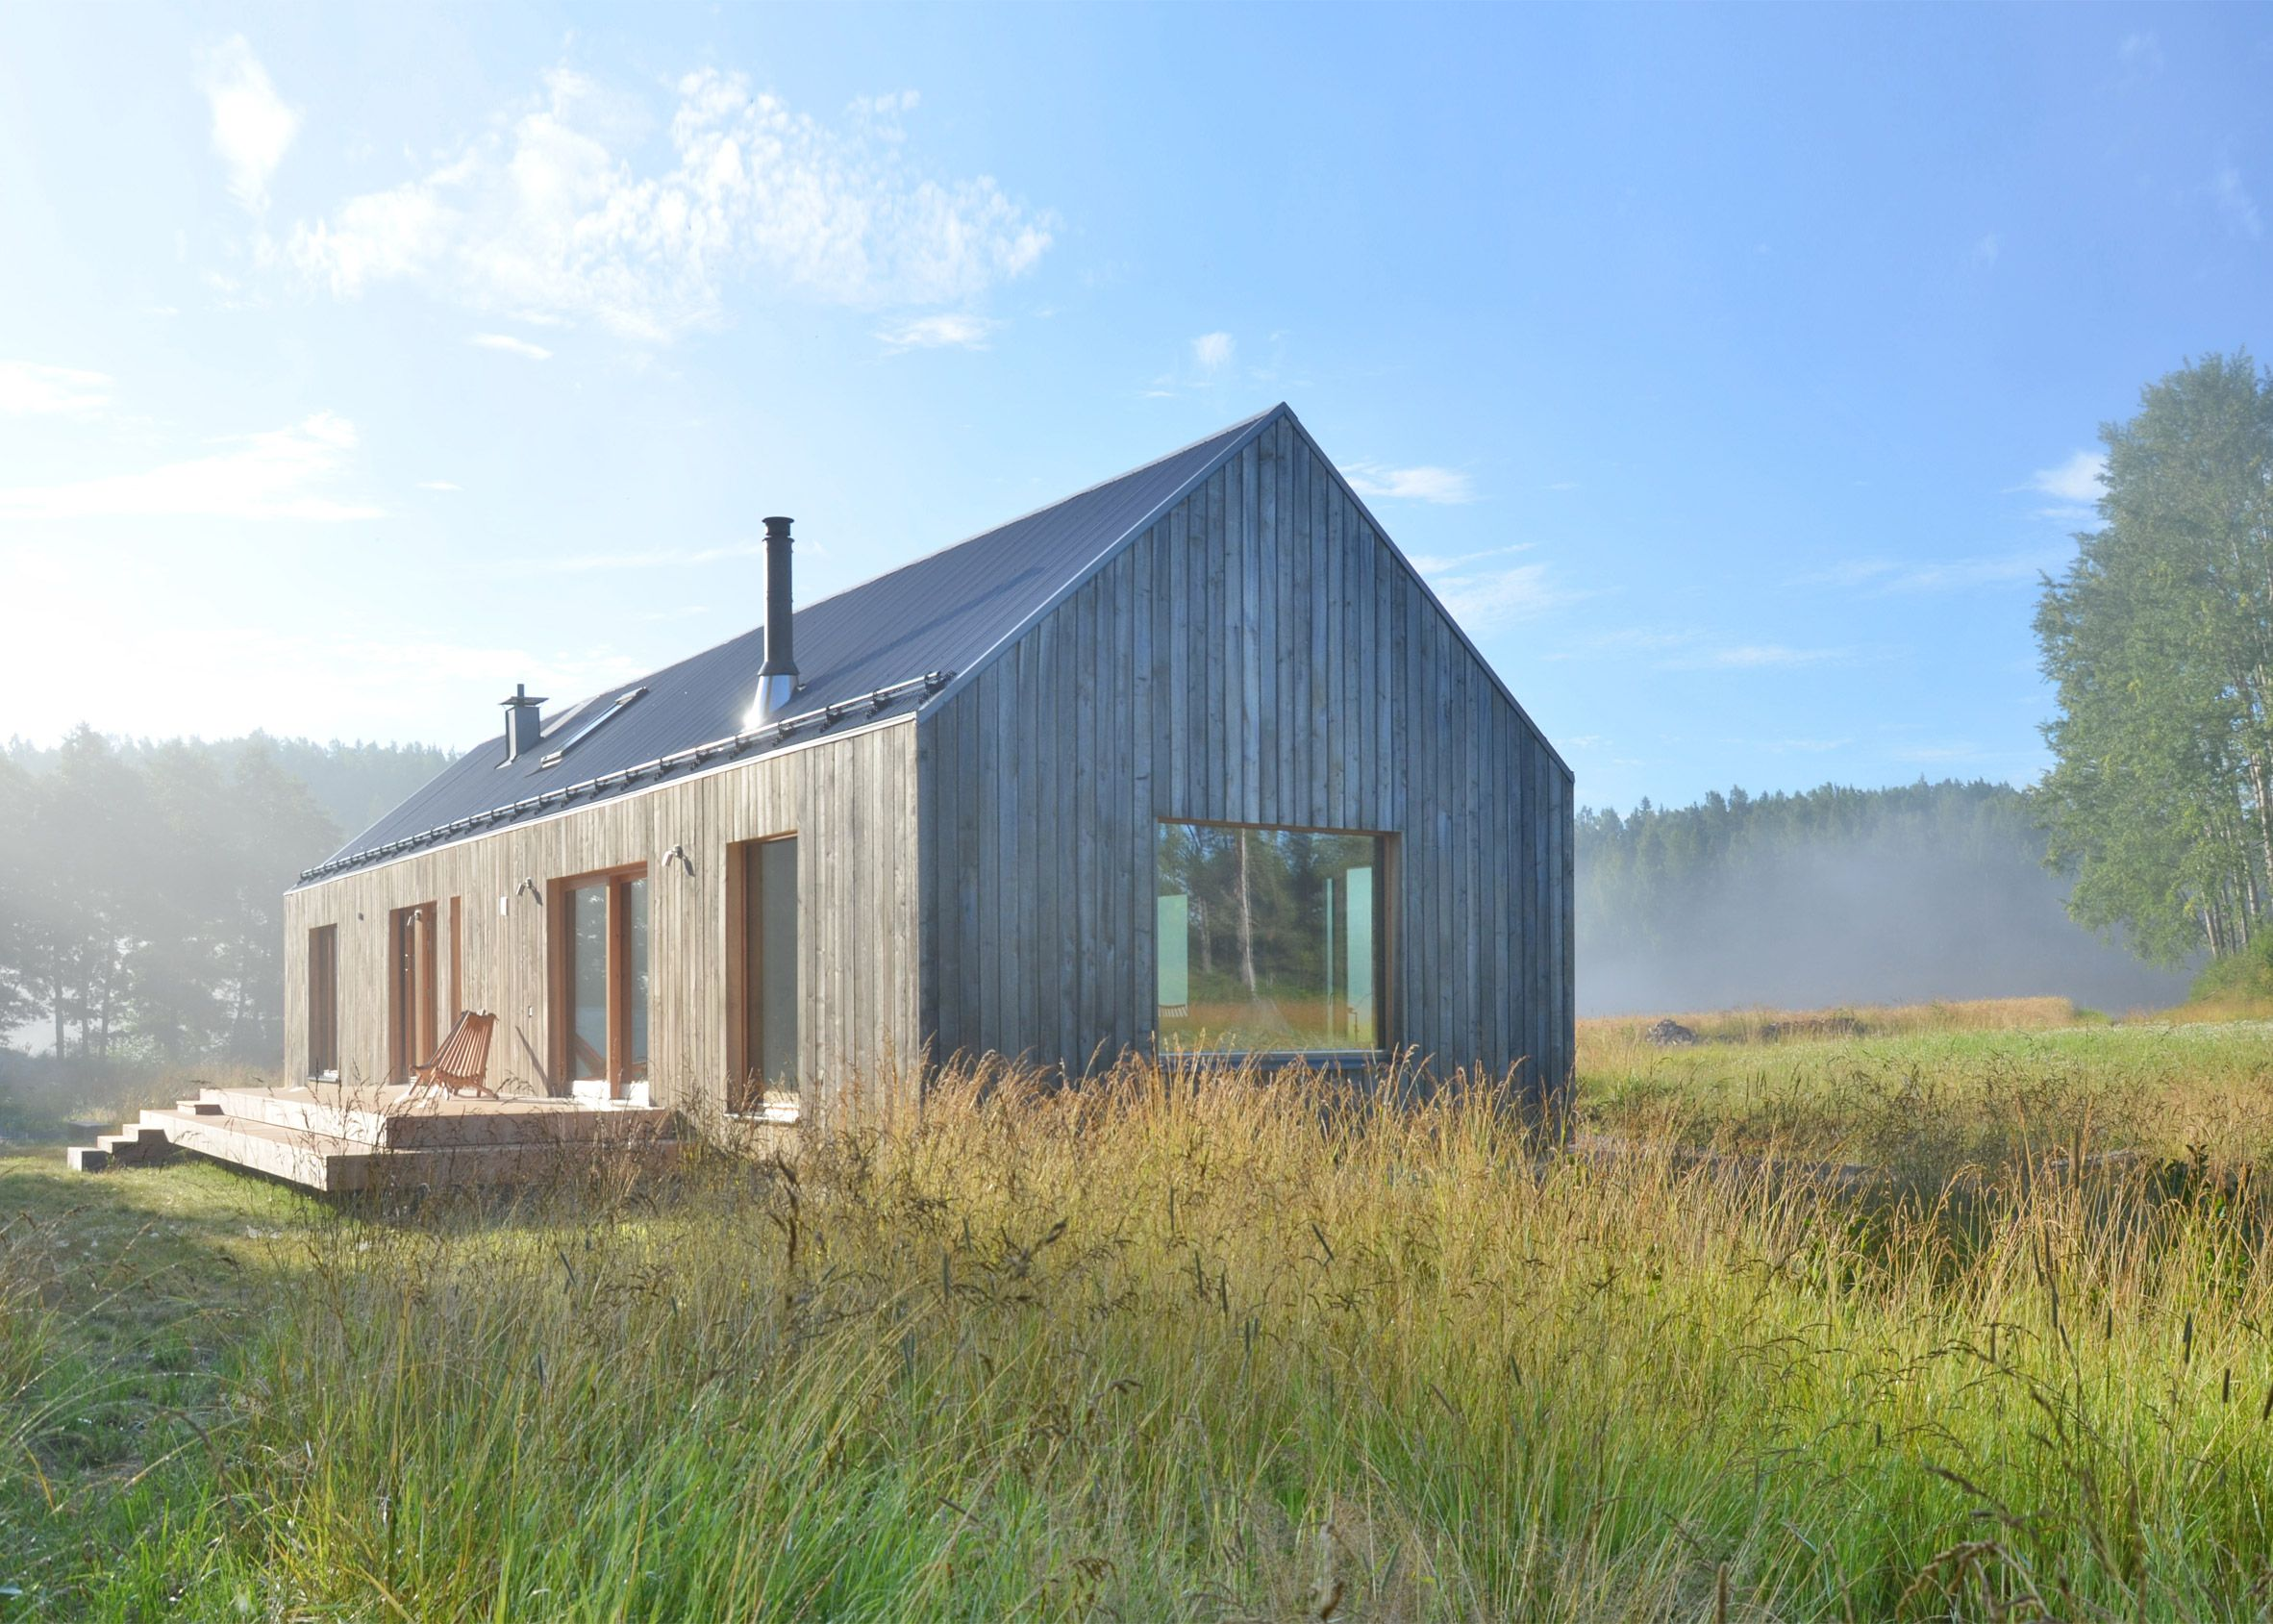 Kleines haus außendesign mny arkitekter uses seven types of timber for finnish lake house